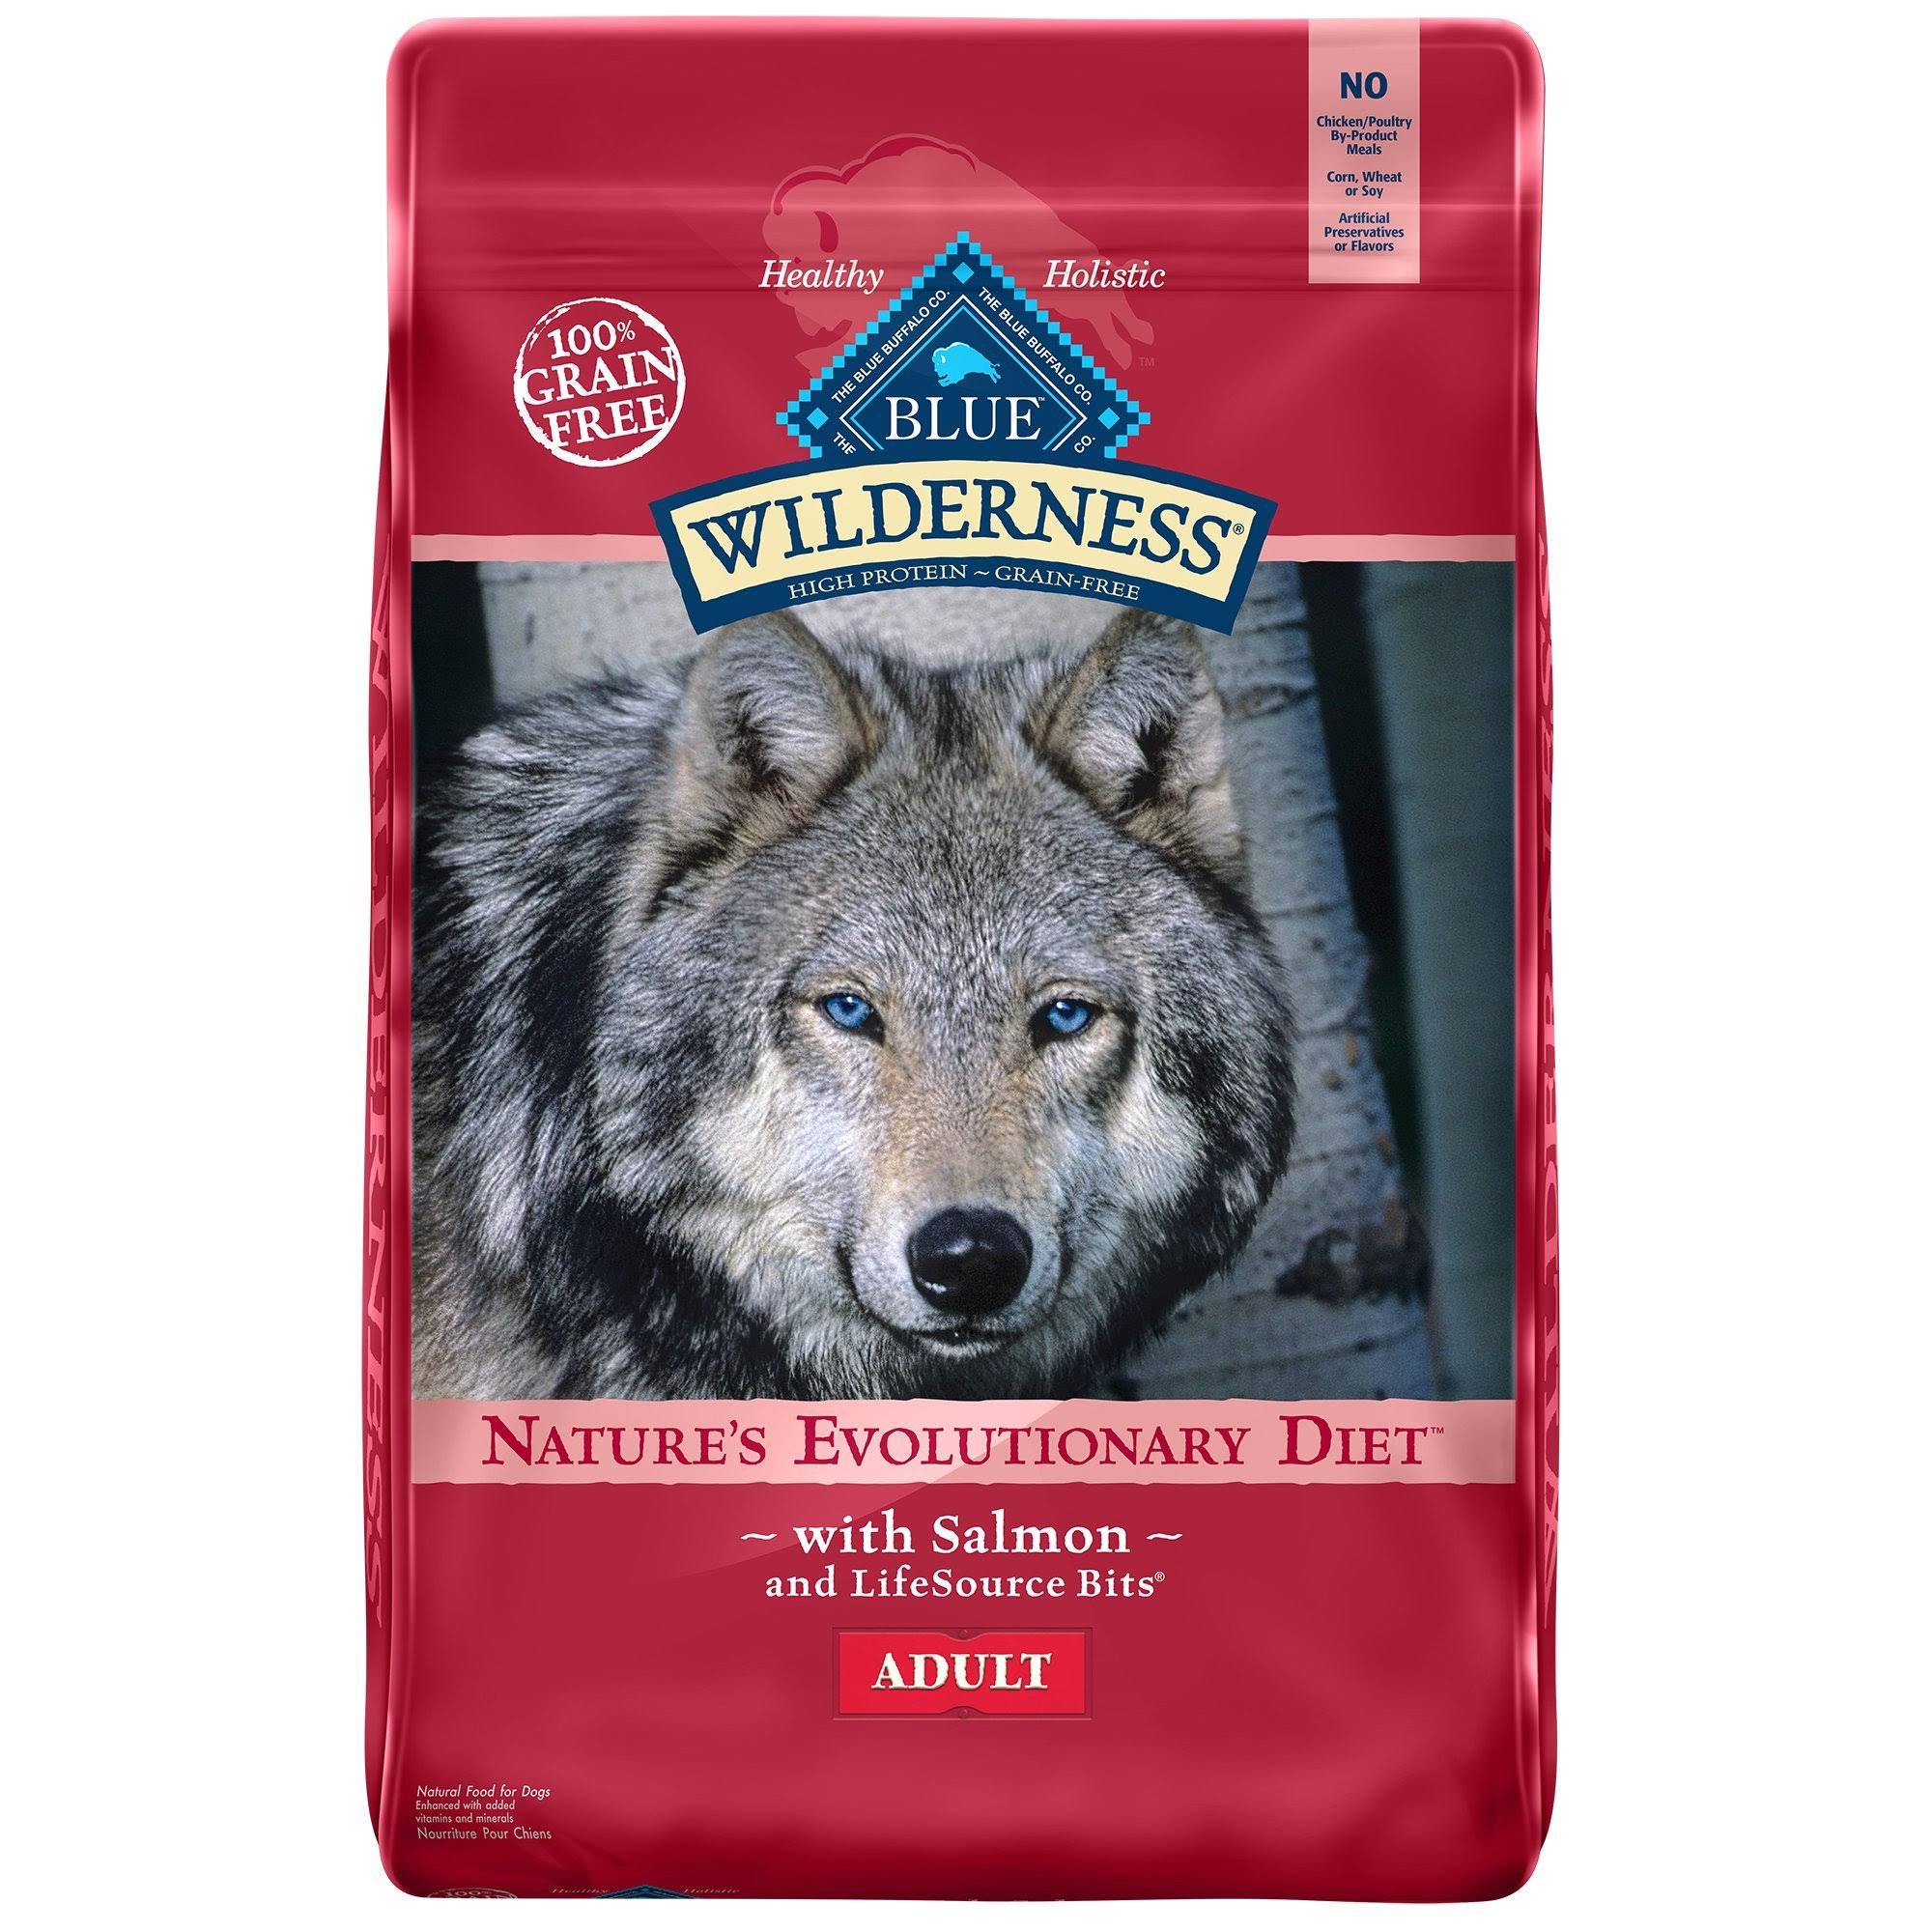 Blue Buffalo Wilderness Grain-Free Adult Natural Dog Food - Salmon Recipe, 24lb